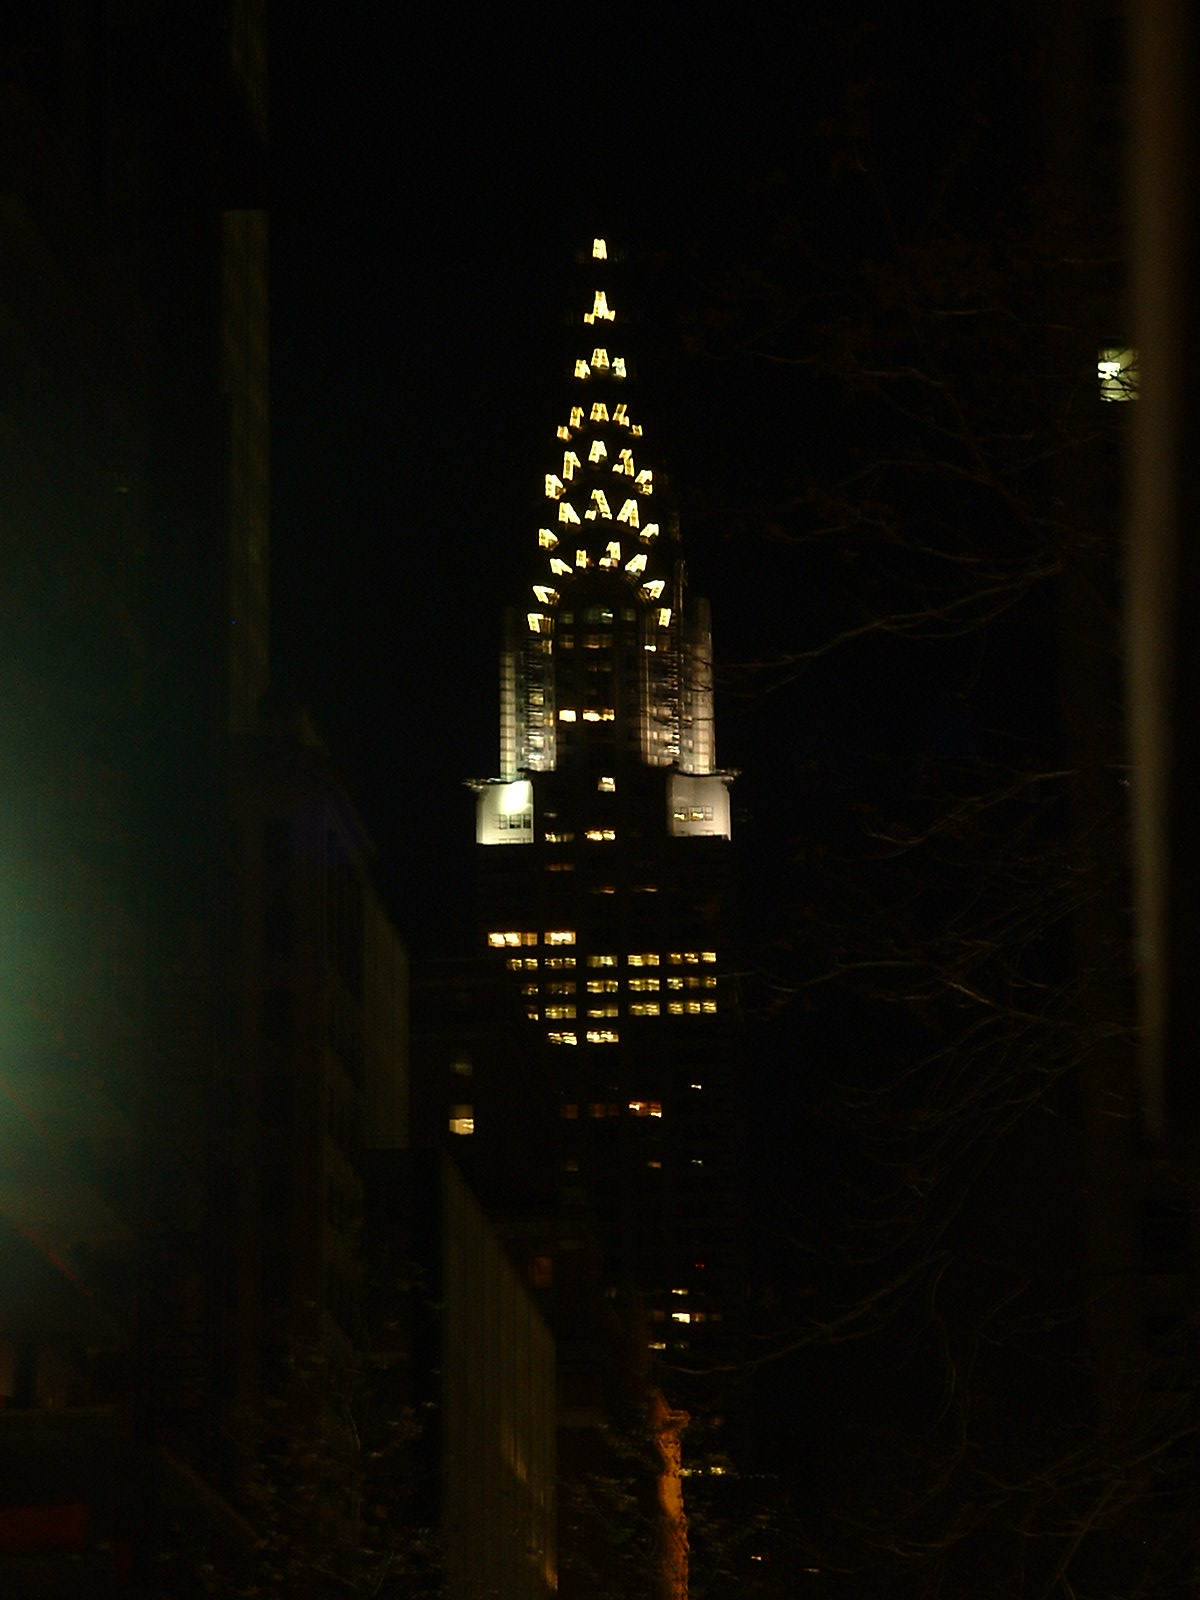 Q3: chrysler building at night